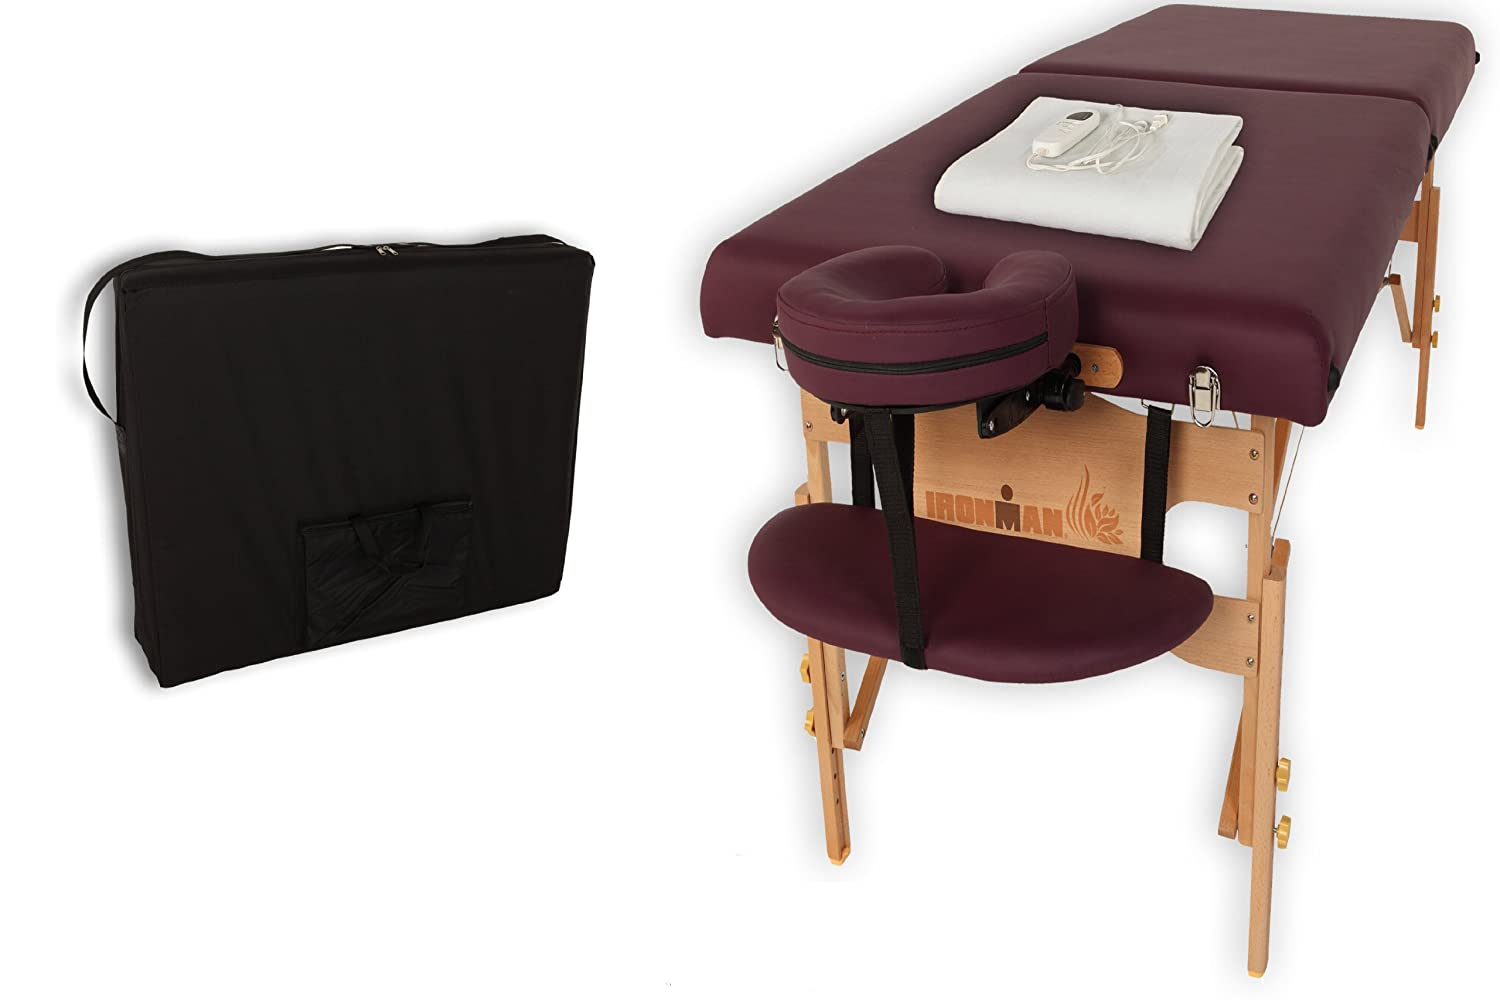 Ironman 9107 30-Inch Astoria Massage Table with Heating Pad and Carry Bag Inc.